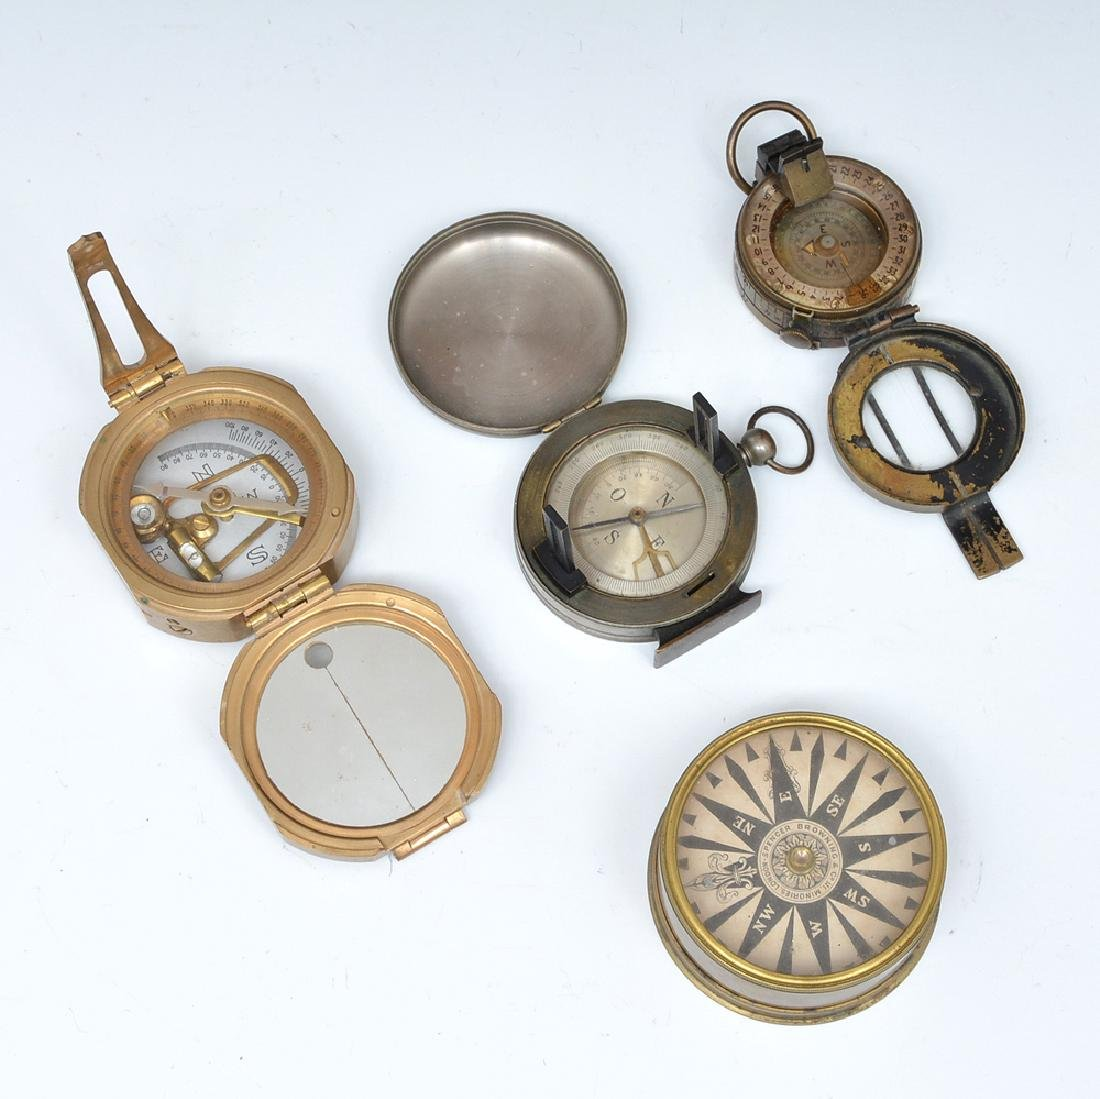 Four brass compasses, 19th/20th c